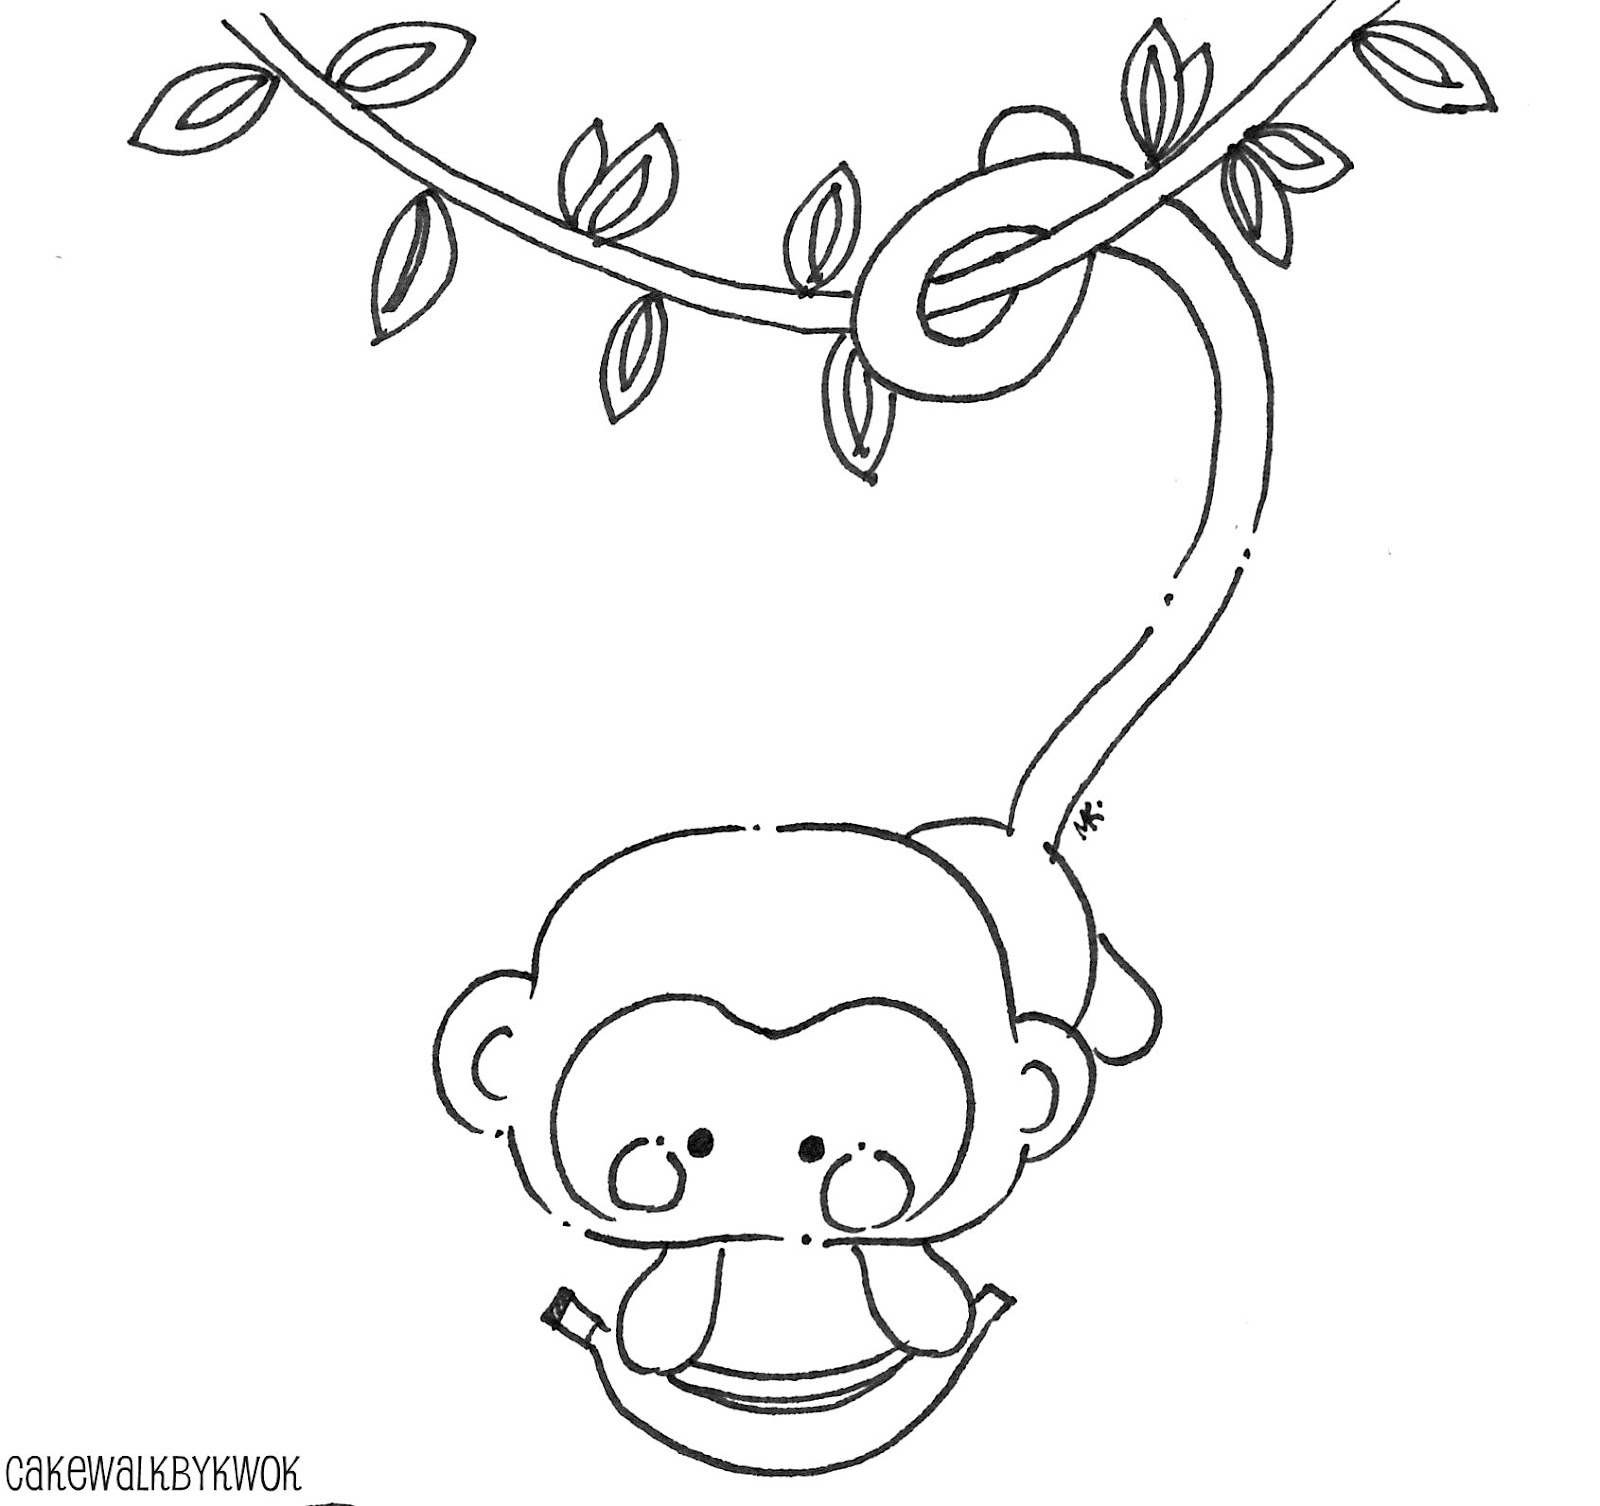 Please And Thank You Coloring Pages Monkey